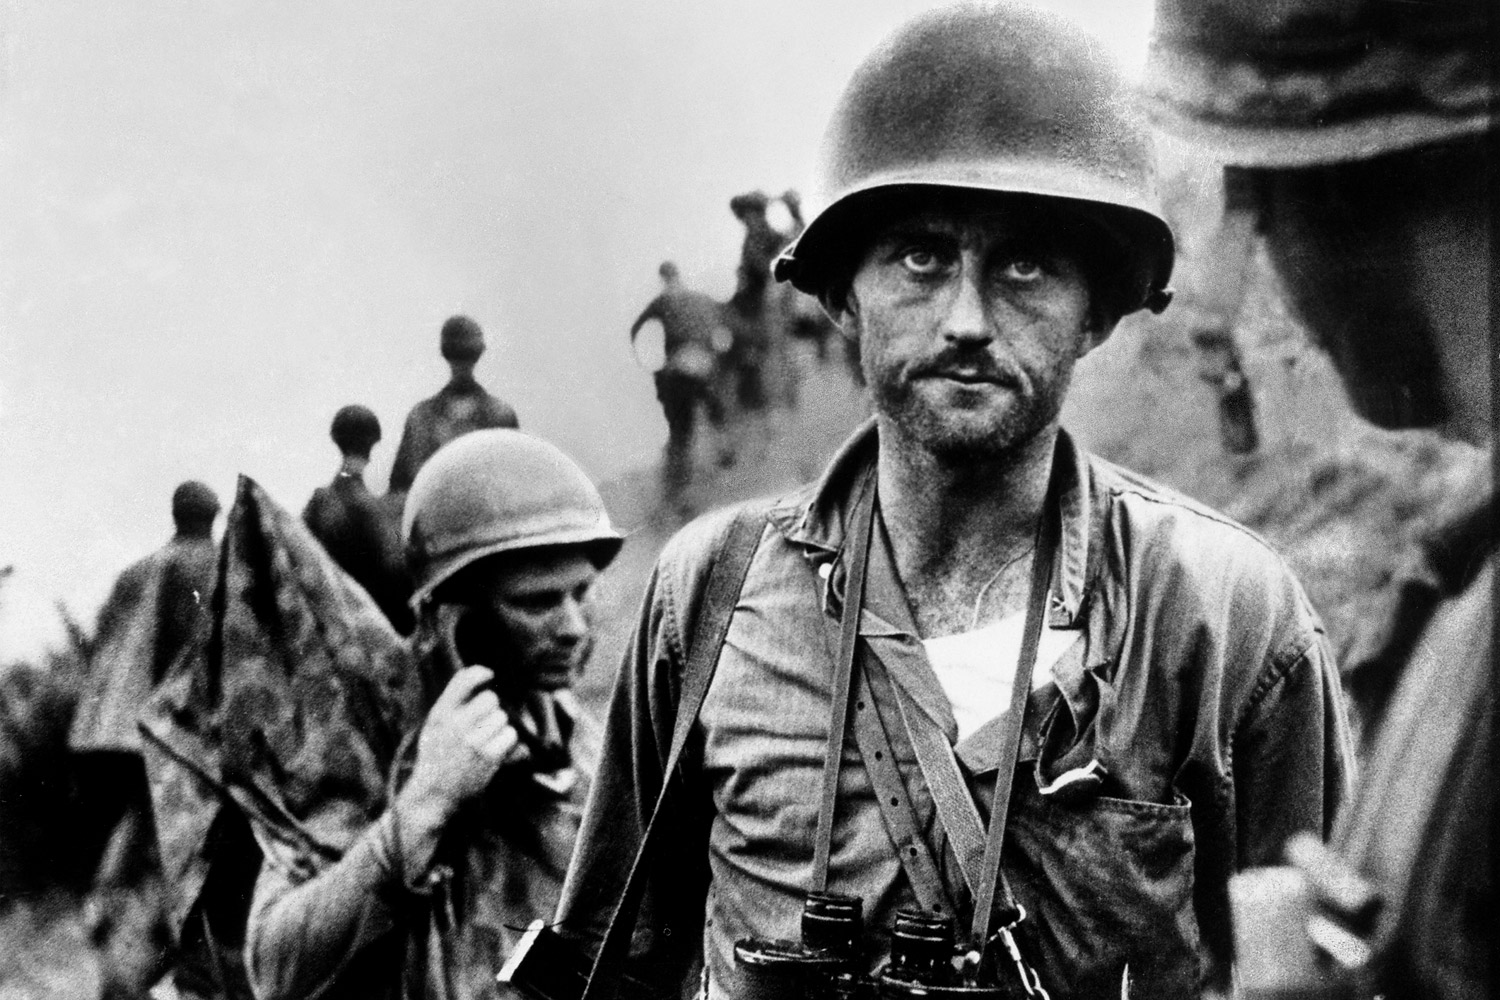 Marine Capt. Francis Ike Fenton looking grim after learning his first sergeant was killed and his unit is out of ammunition during a heavy North Korean counterattack along the Naktong River in August 1950.